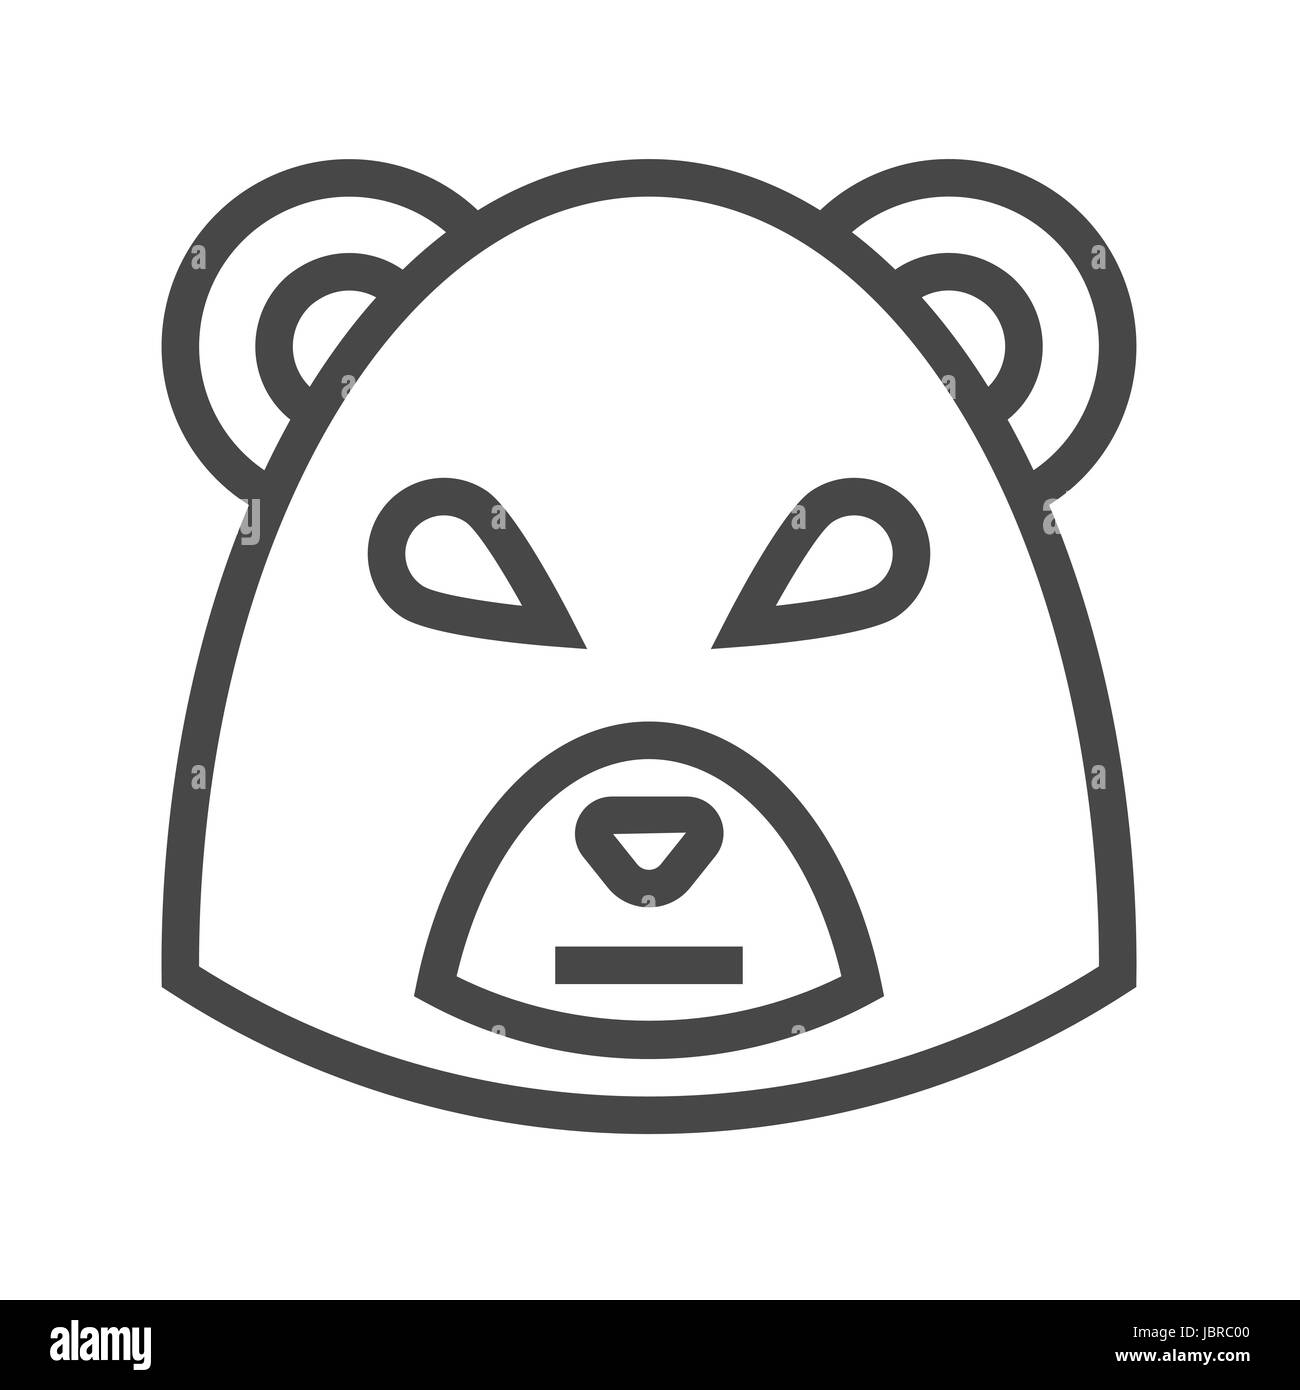 Bear Market Thin Line Vector Icon. Flat icon isolated on the white background. Editable EPS file. Vector illustration. - Stock Vector